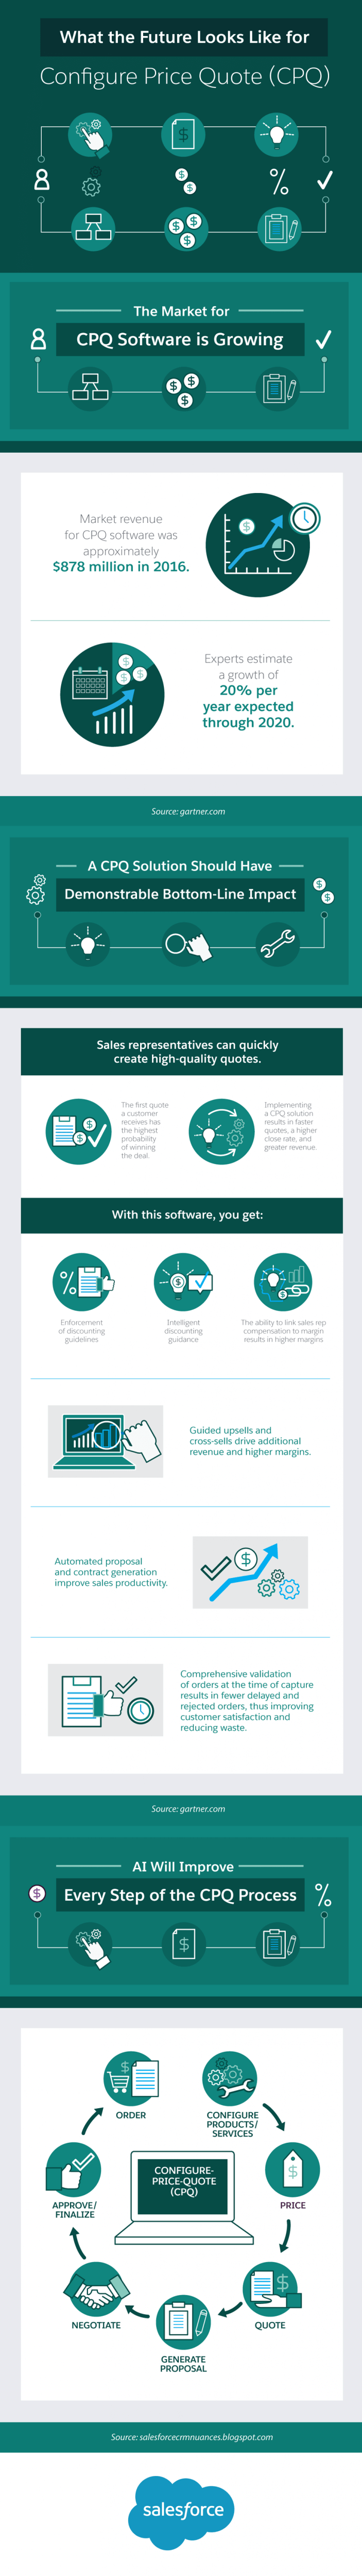 Take a look at the future of CPQ with this infographic!